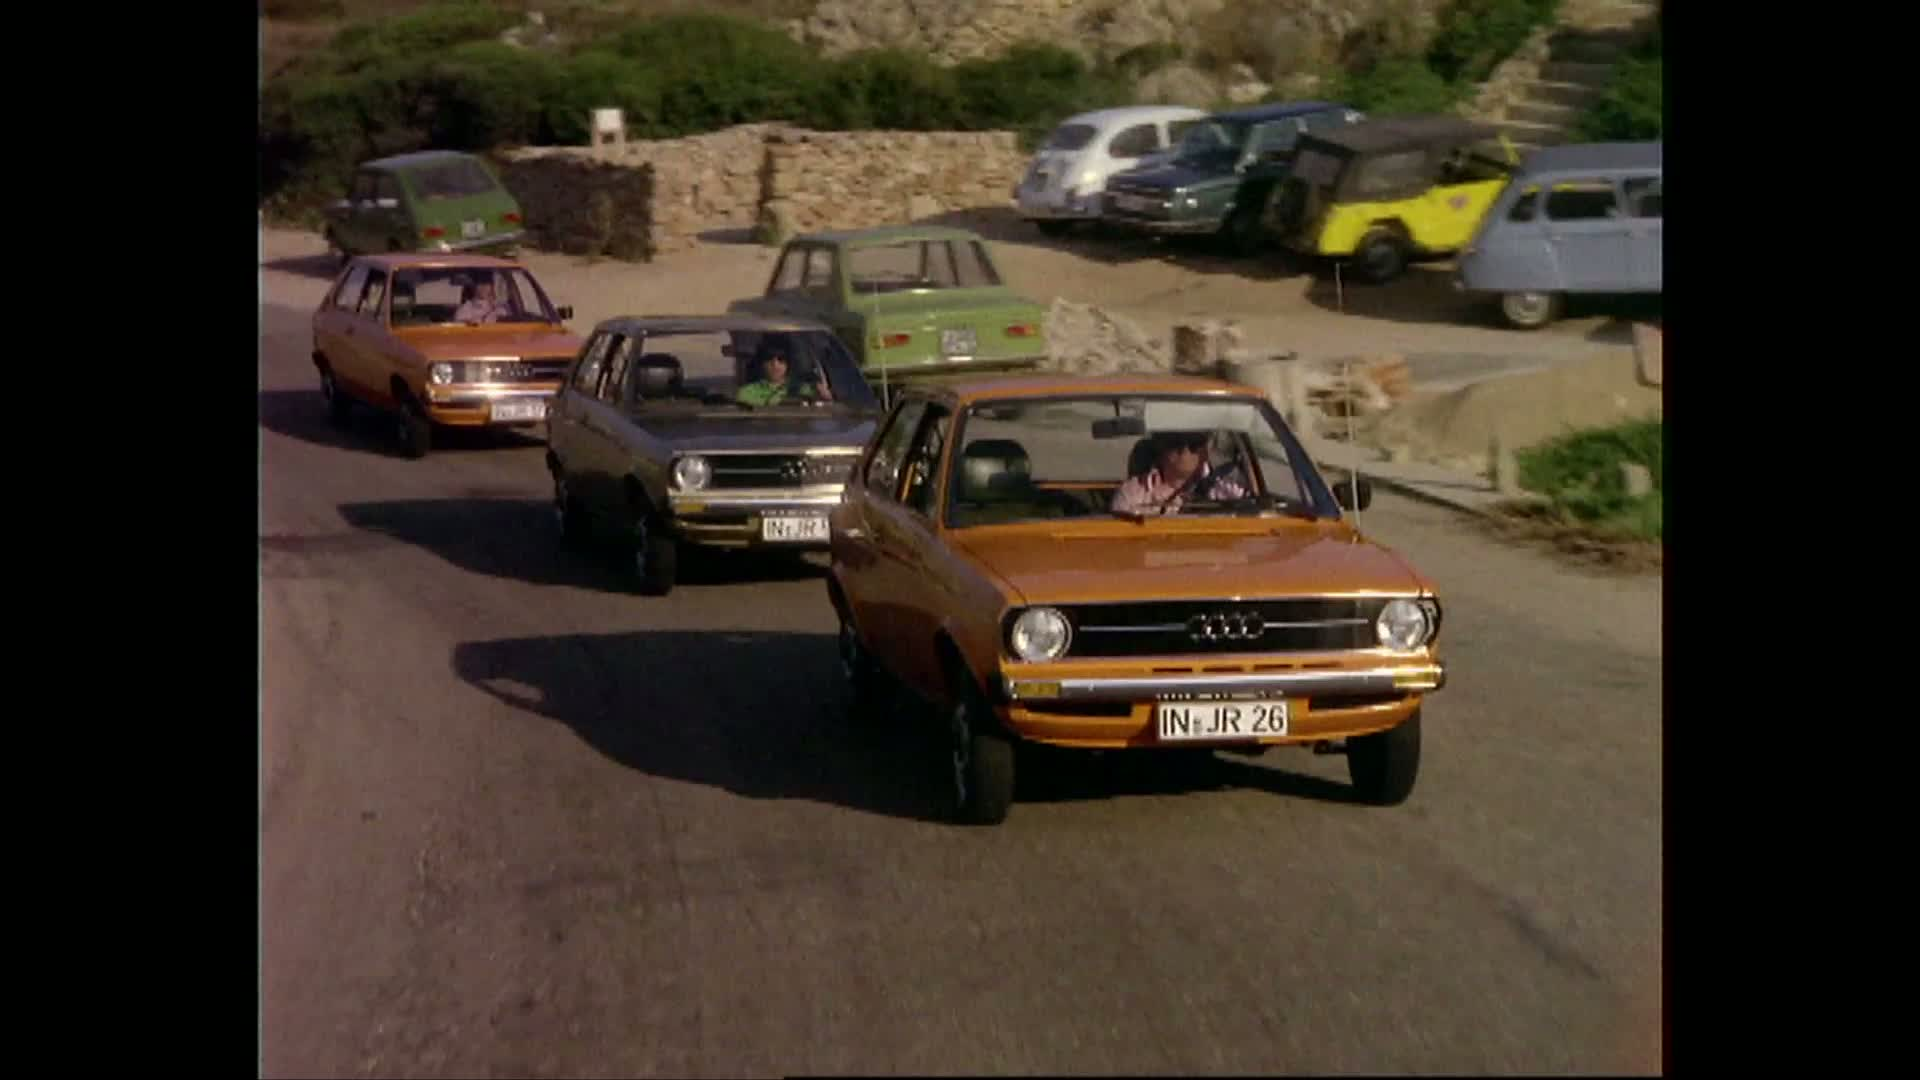 Audi history: The Audi 50 from 1974